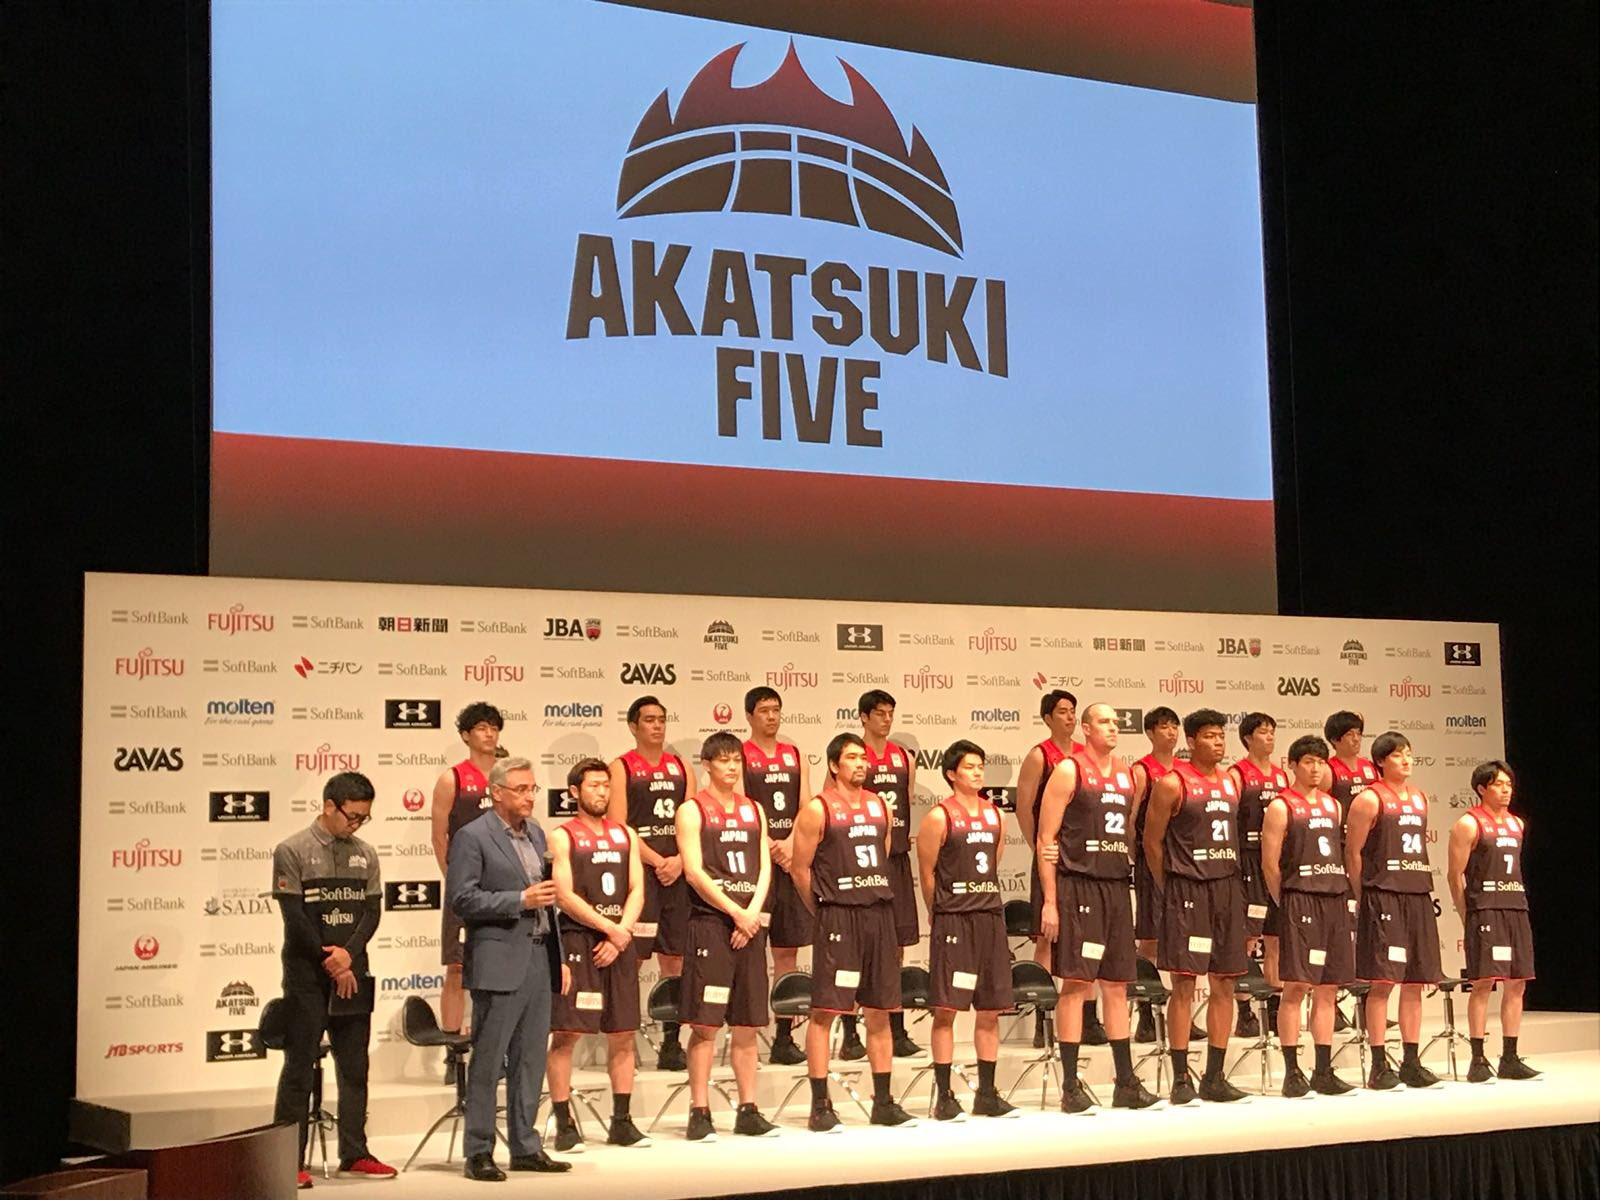 Press conference for WCQ Window3 in Shinagawa. #FibaAsia #AKATSUKIFIVE https://t.co/H0aKL3BQ37